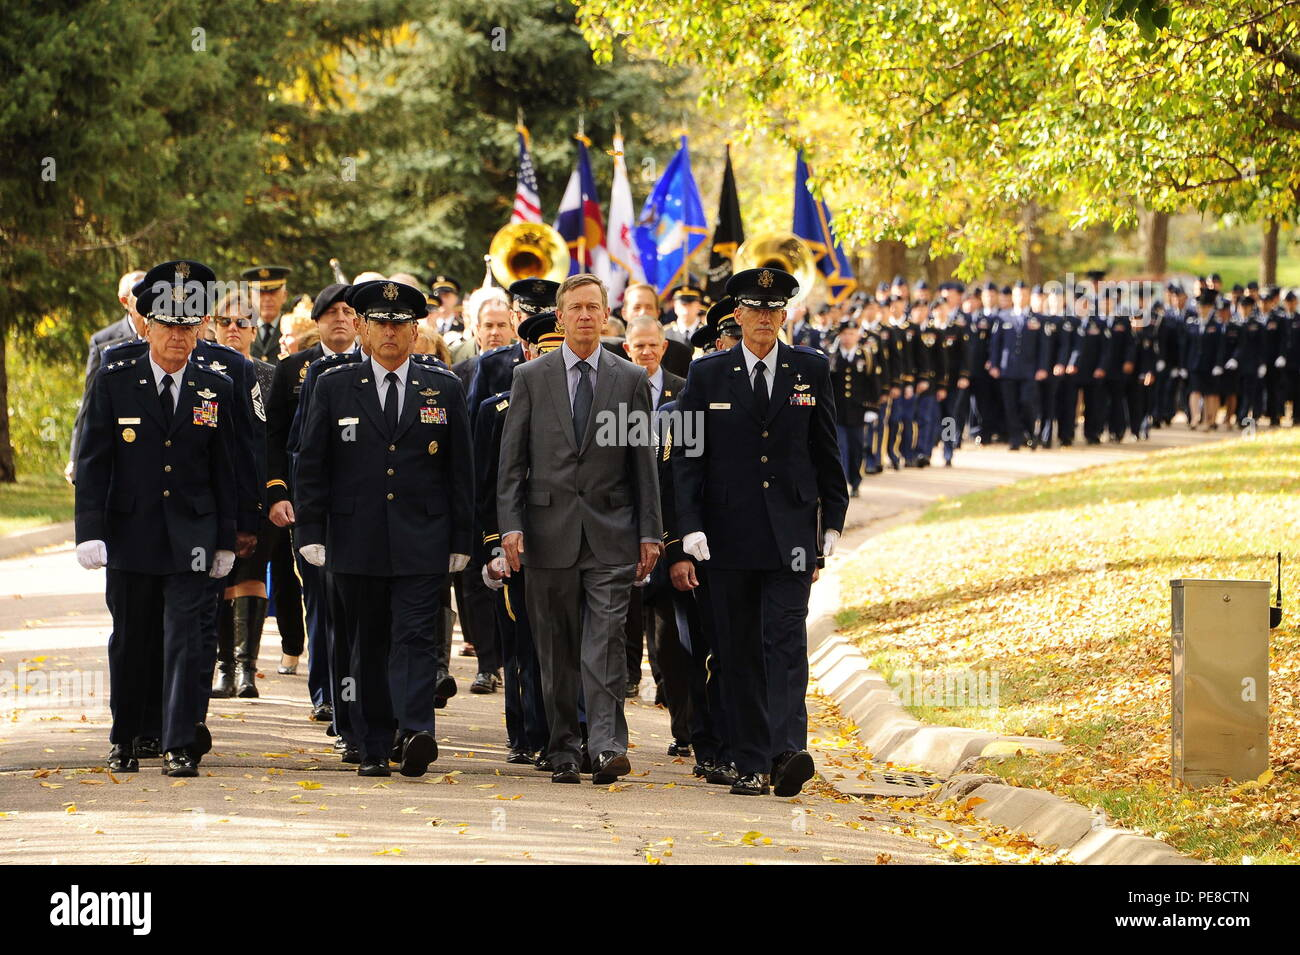 Key leaders lead the procession of service members during Maj. Gen. John L. France (retired) memorial at Fort Logan National Cemetery, Denver, Oct. 26, 2015. France was the longest serving adjutant general for the state of Colorado. (U.S. Army National Guard photo by Spc. Ray R. Casares/Released) - Stock Image